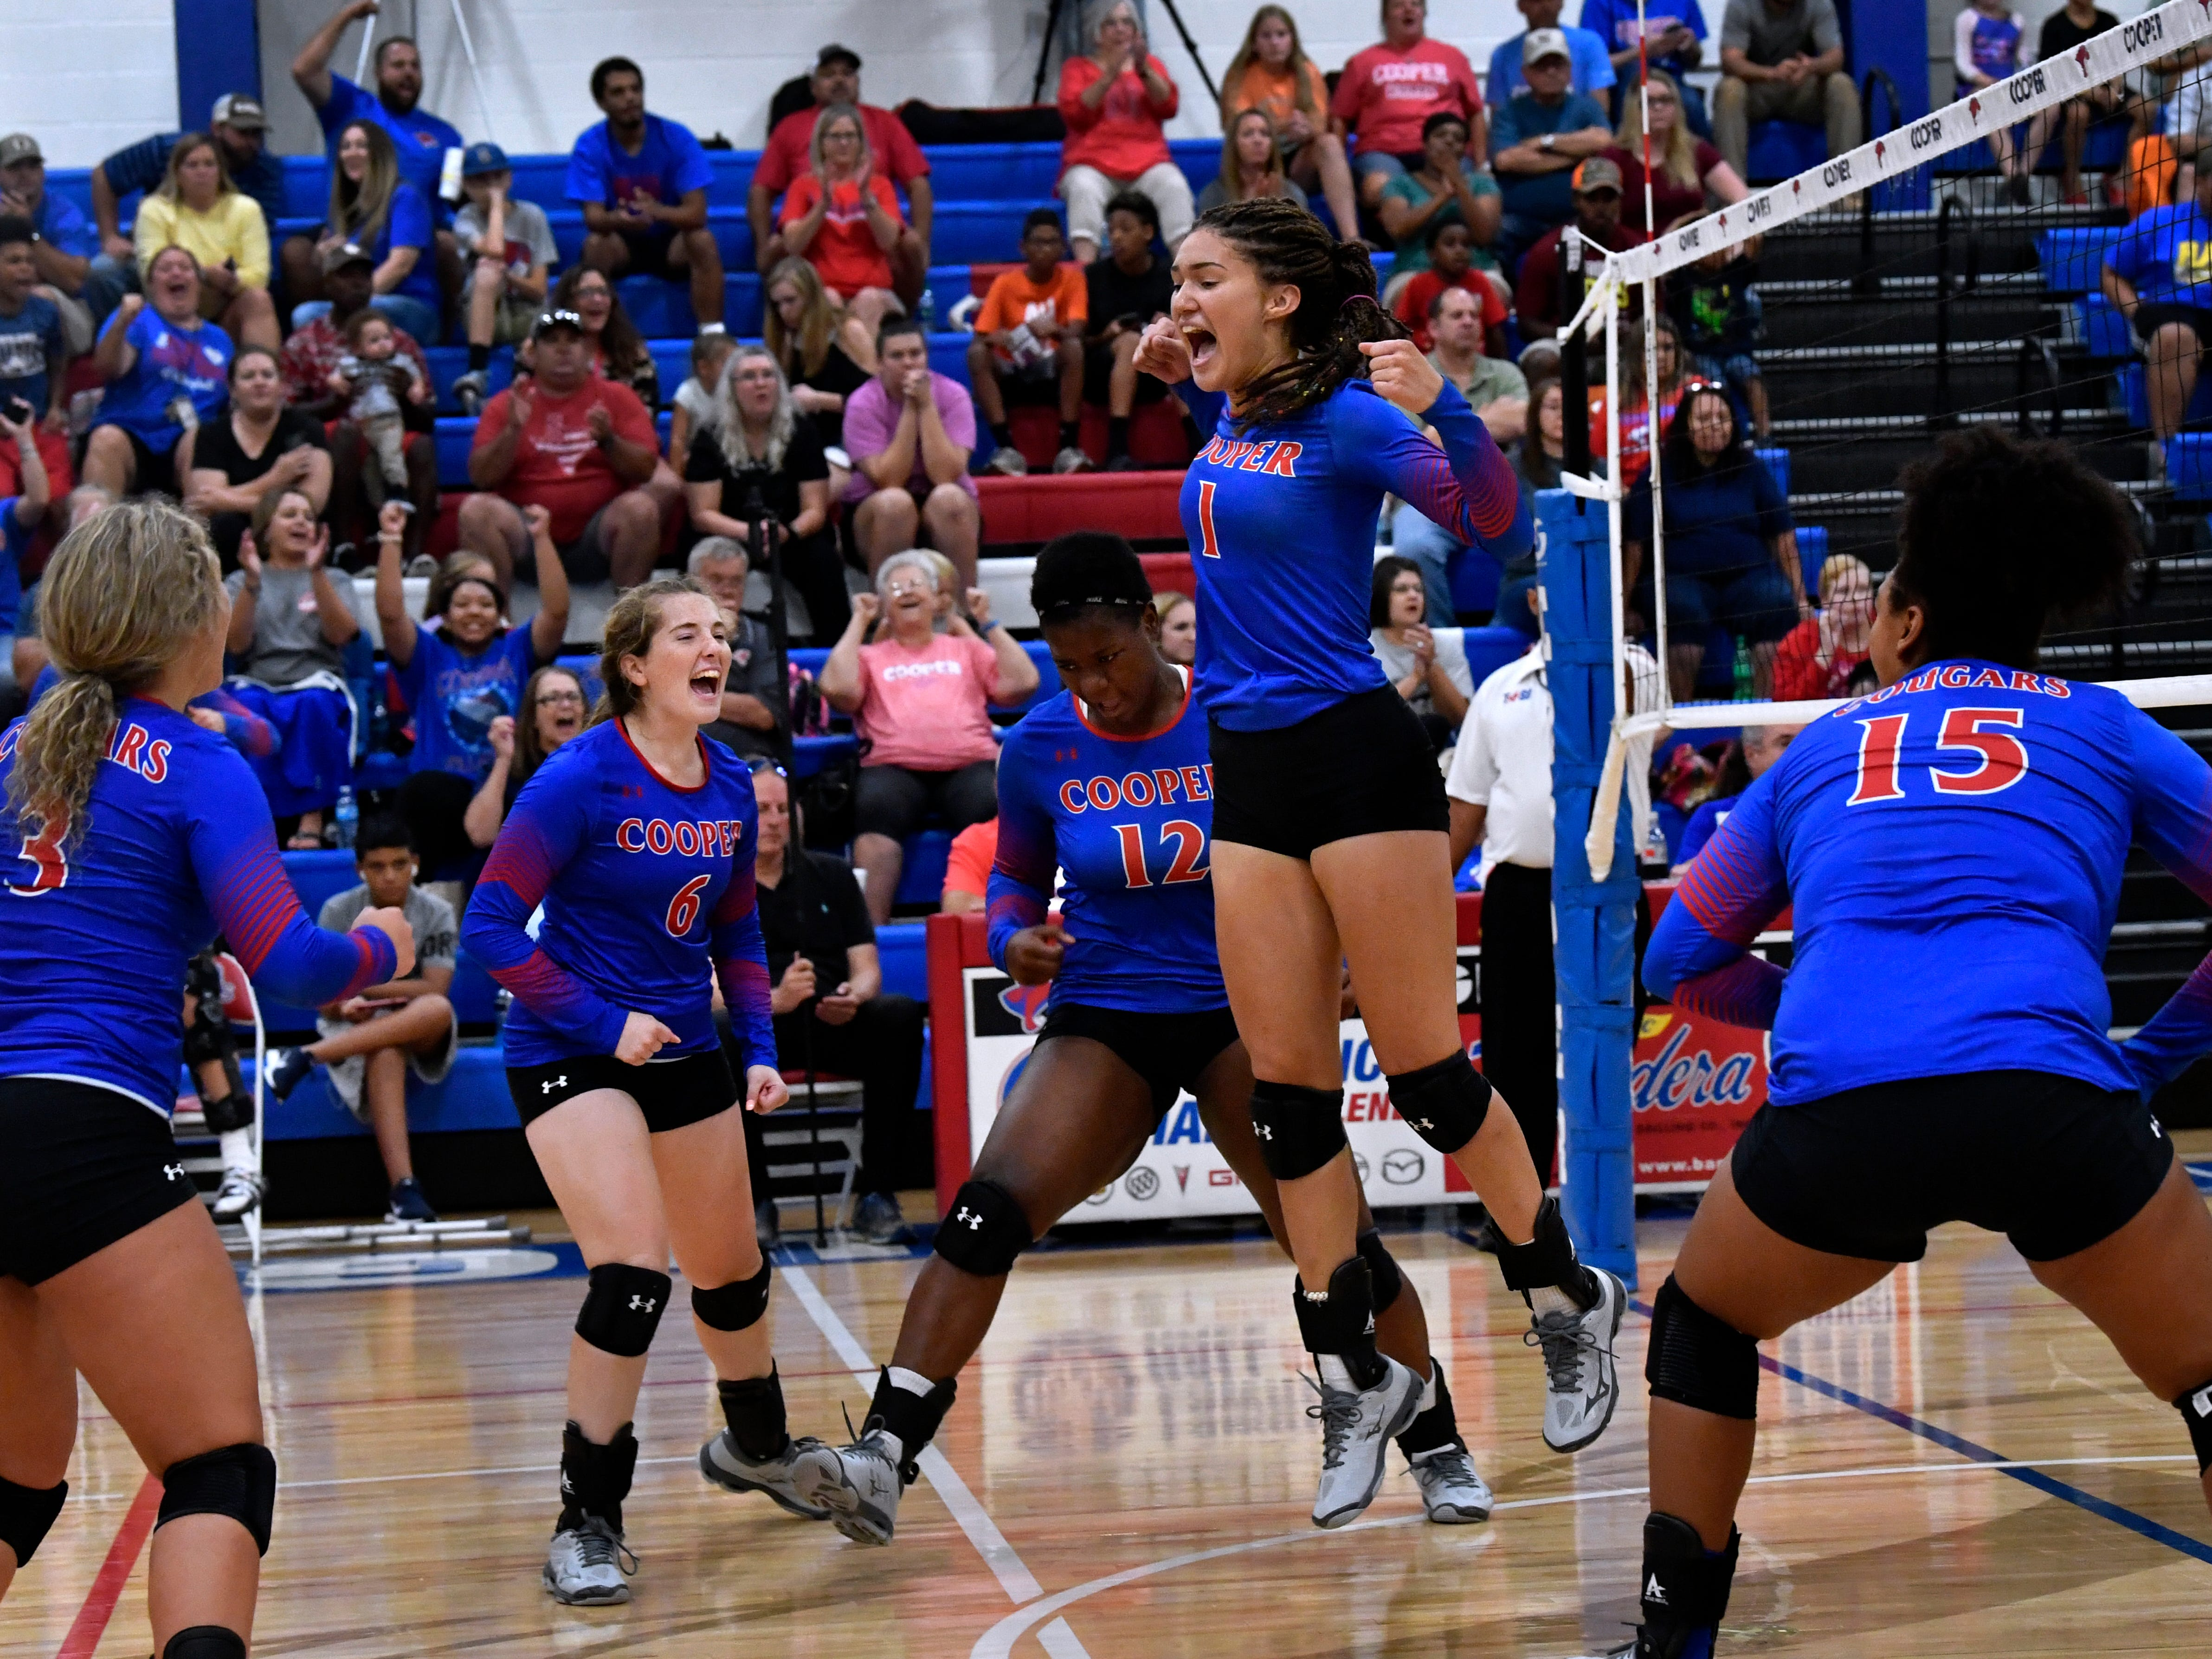 Cooper High School players celebrate a play against the Lady Eagles. Abilene High won the crosstown volleyball game Tuesday August 7, 2018 against Cooper High in the best-of-five match, 25-21, 16-25, 25-20, 17-25, 15-7.